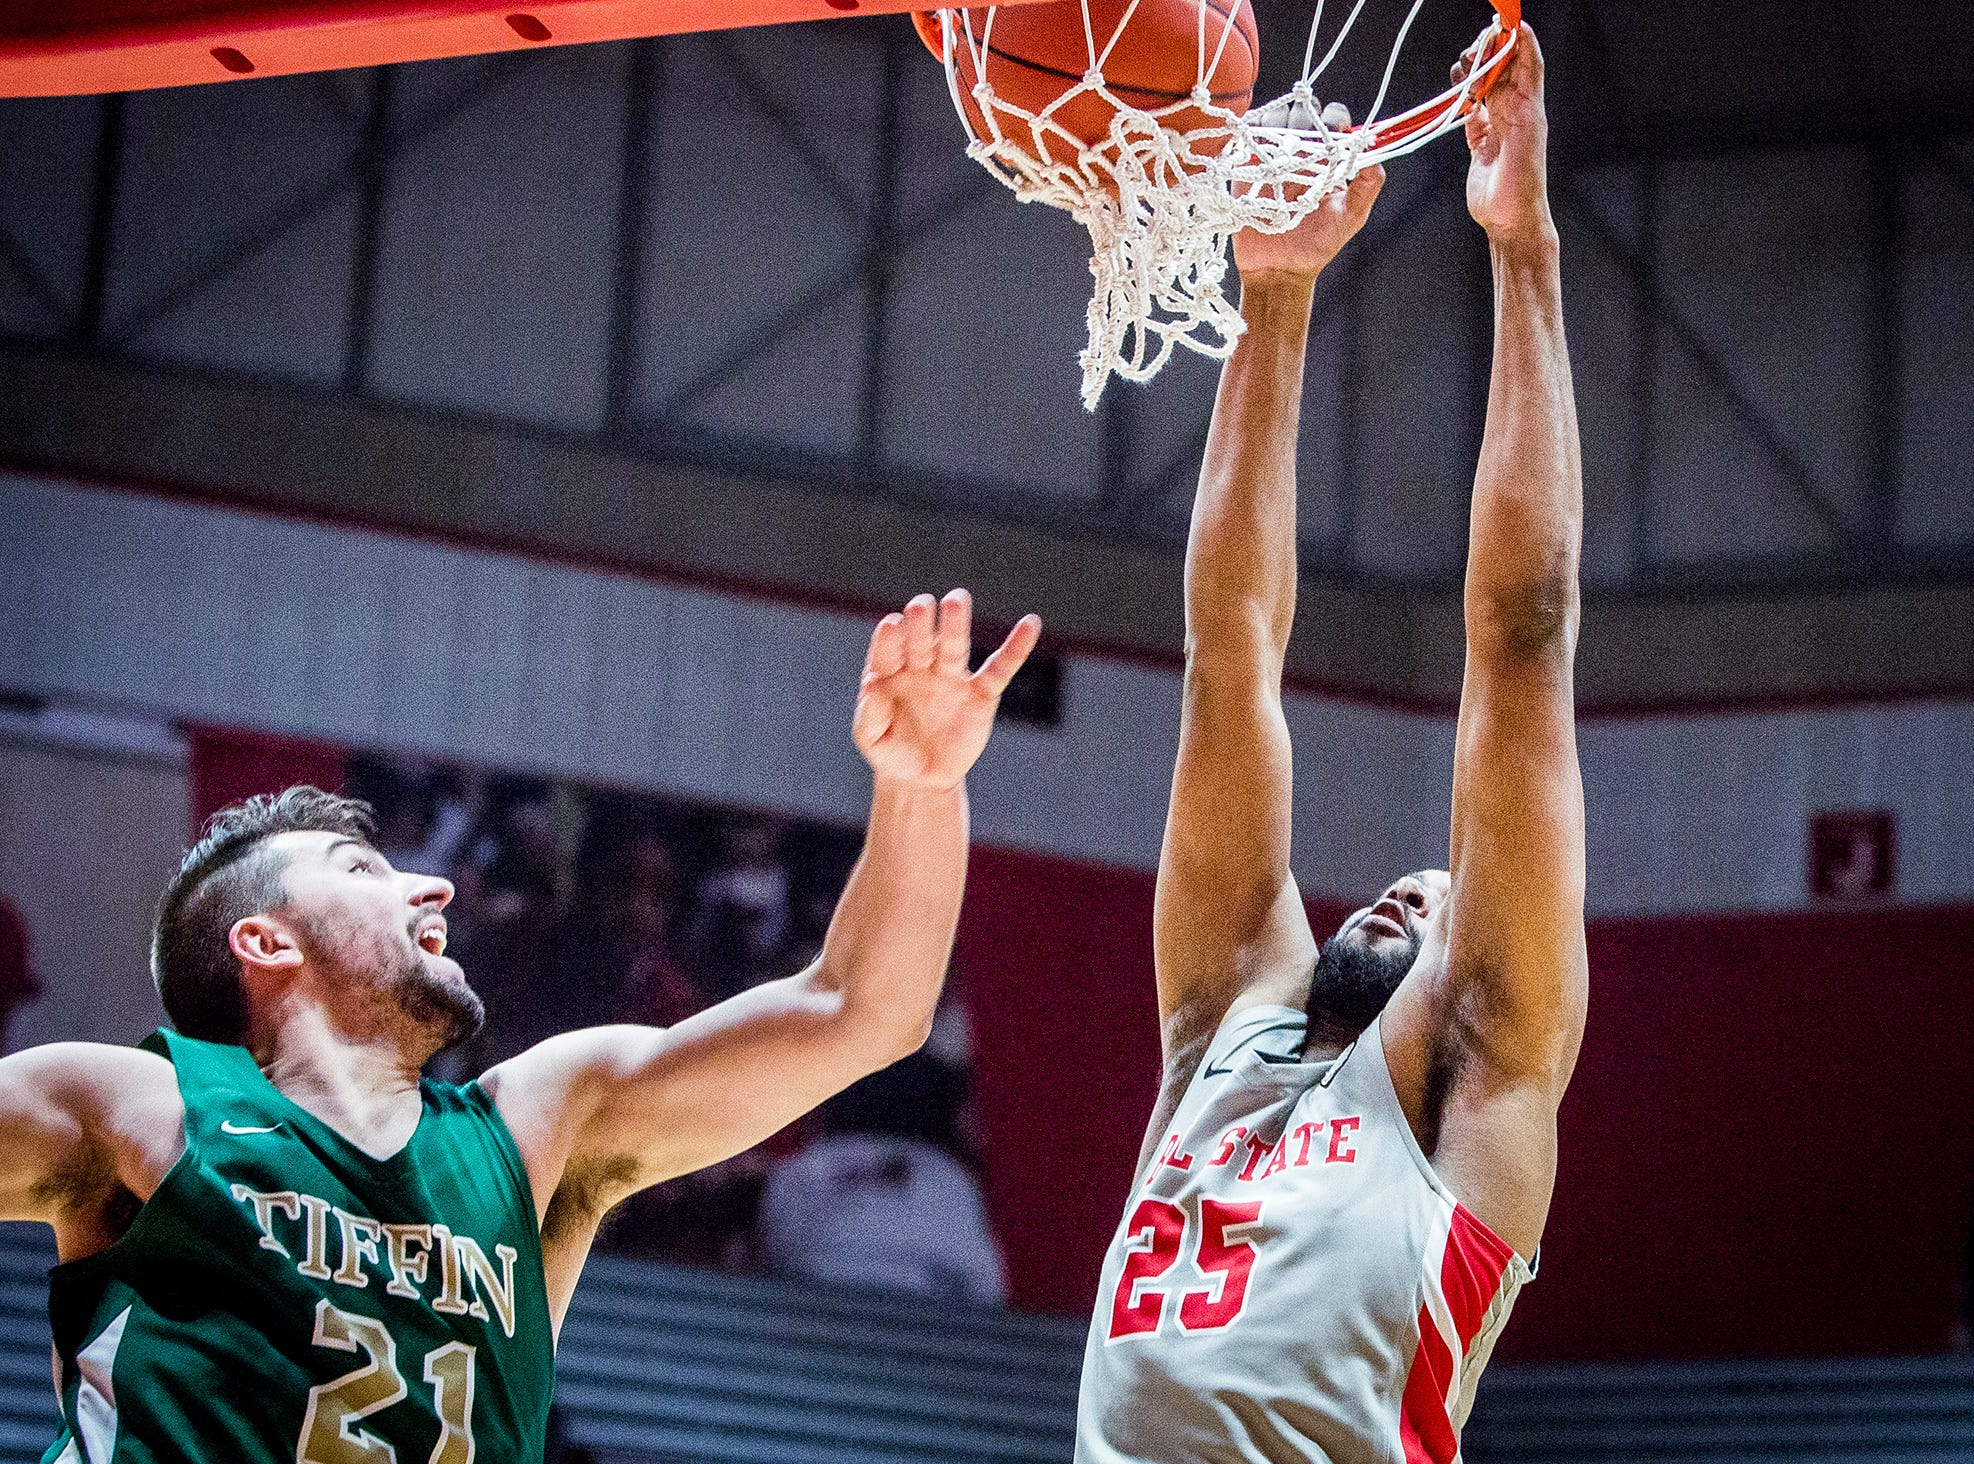 Ball State's Tahjai Teague dunks against Tiffin's defense during their game at Worthen Arena Tuesday, Nov. 27, 2018.